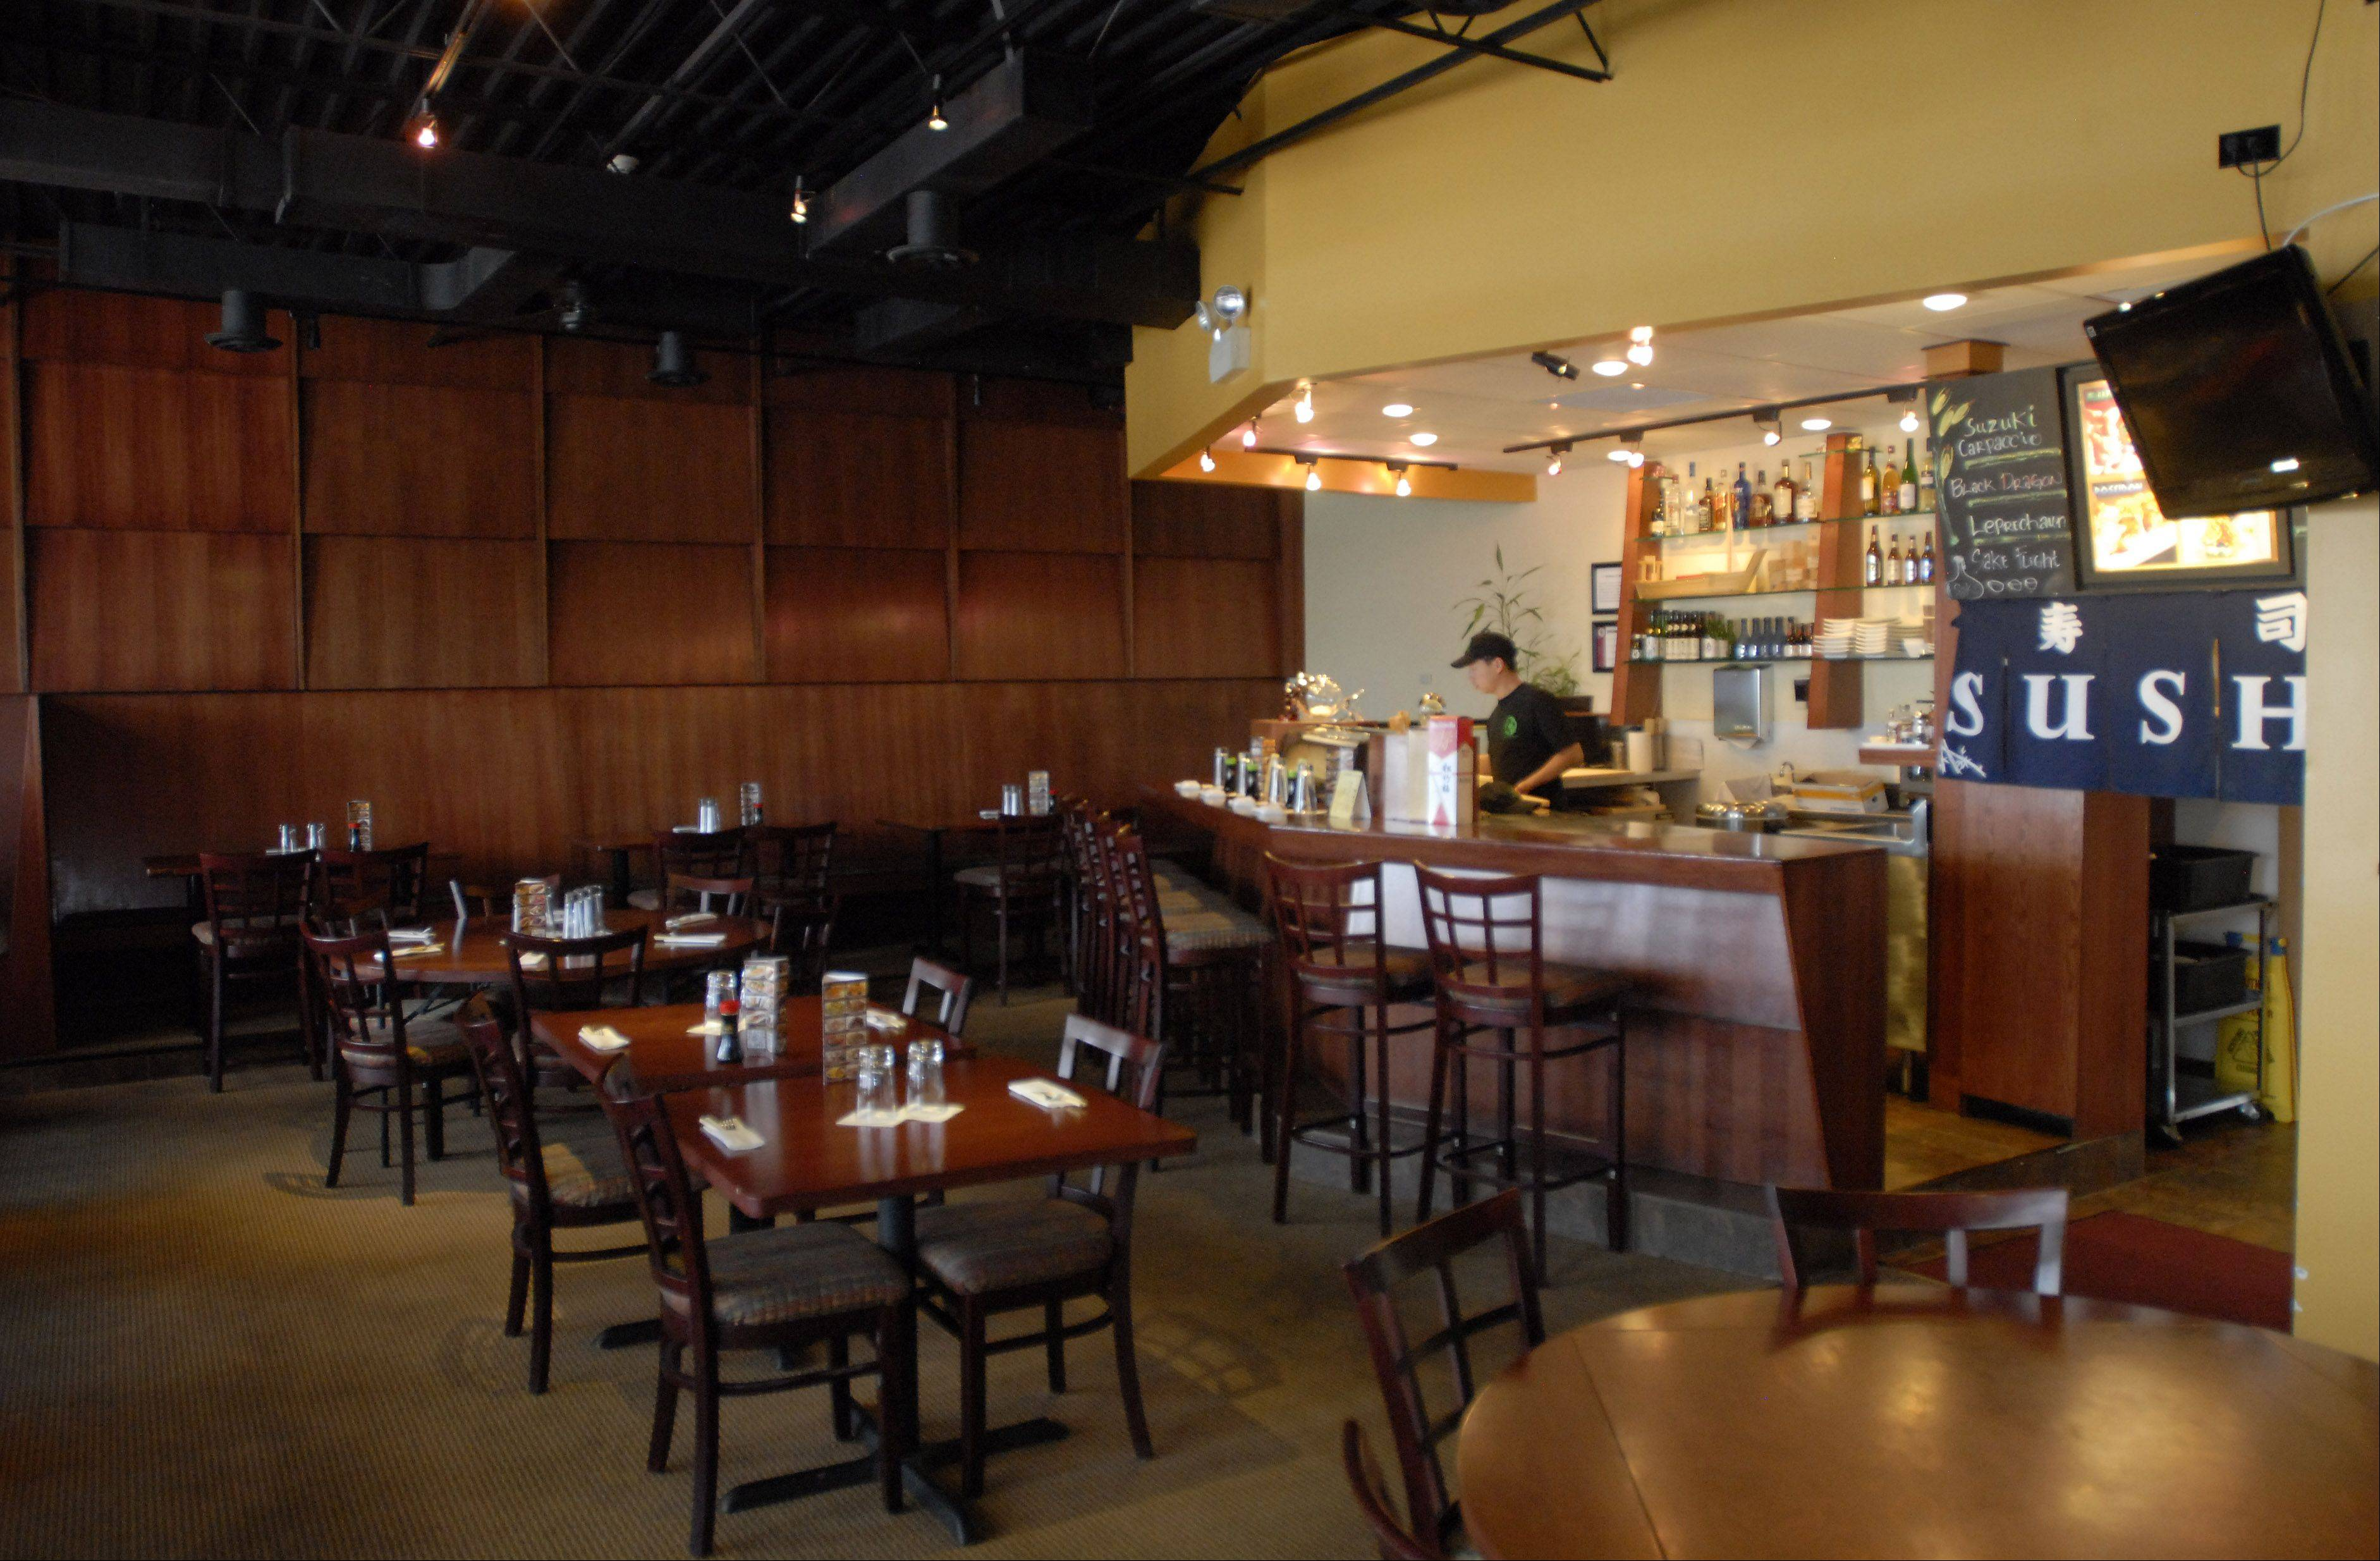 Bistro Dragon, a contemporary sushi and Chinese restaurant in Elk Grove Village, features warm wood walls and tables.